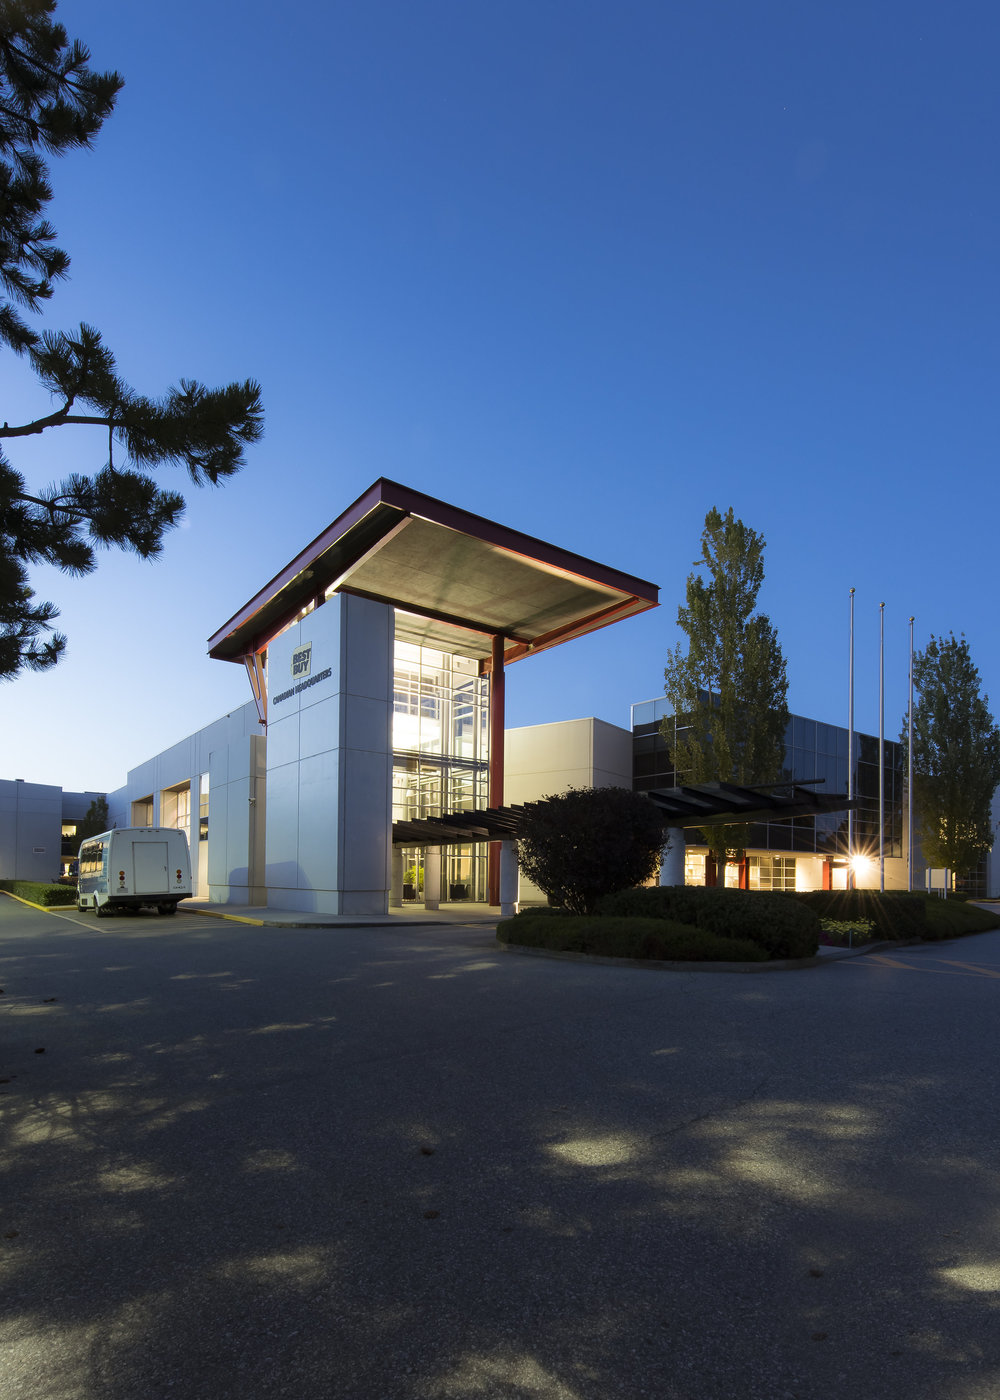 Glenlyon Business Park Vancouver architecture photography landscape by PFS Studio